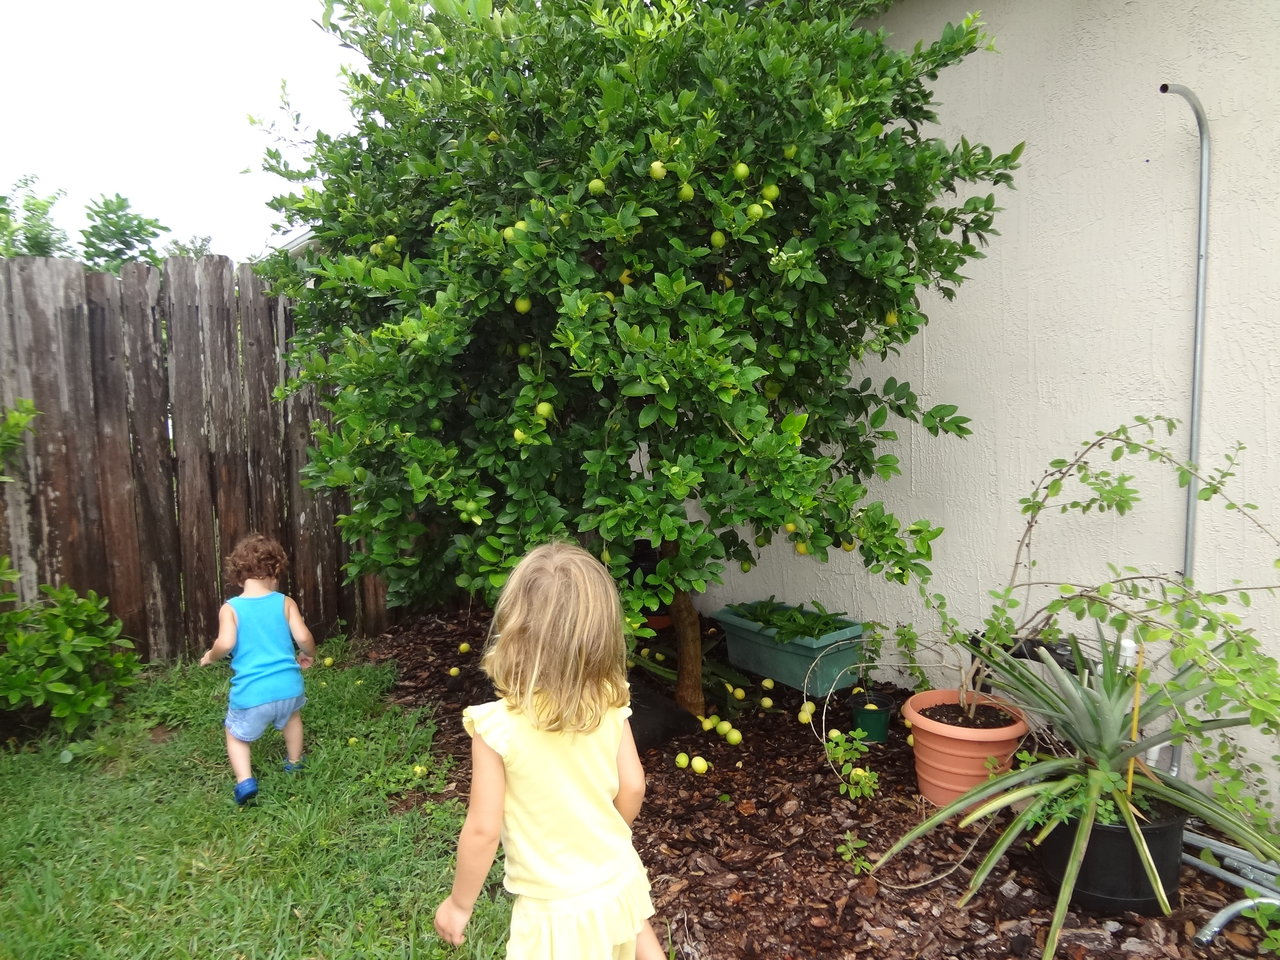 Four year old true Key Lime tree